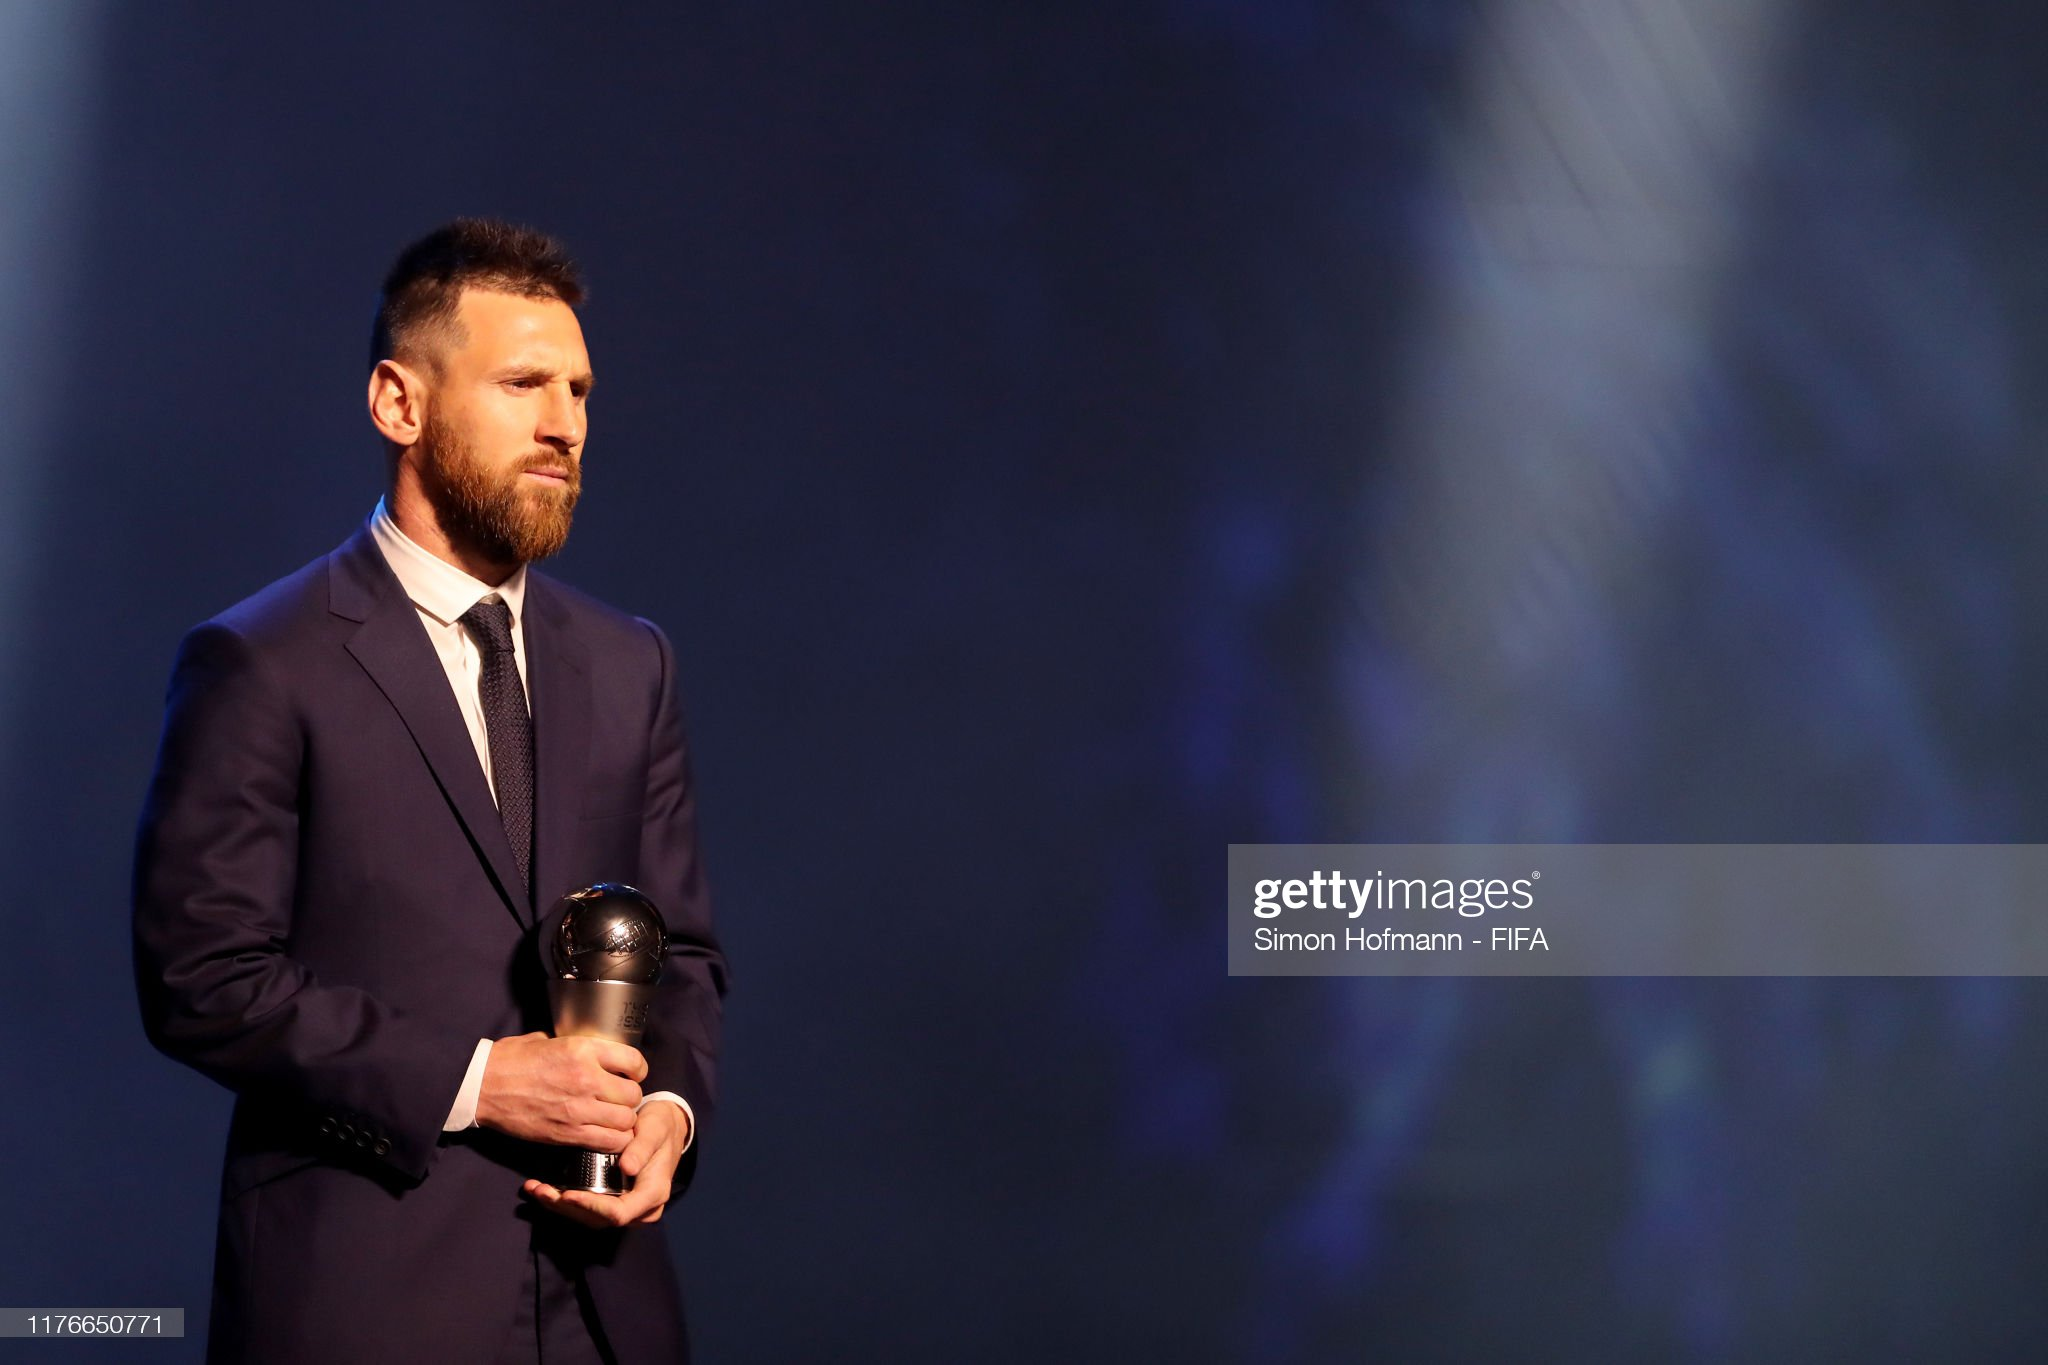 The Best FIFA Football Awards 2019 The-fifa-fifpro-mens-world11-award-winnner-lionel-messi-of-fc-and-picture-id1176650771?s=2048x2048